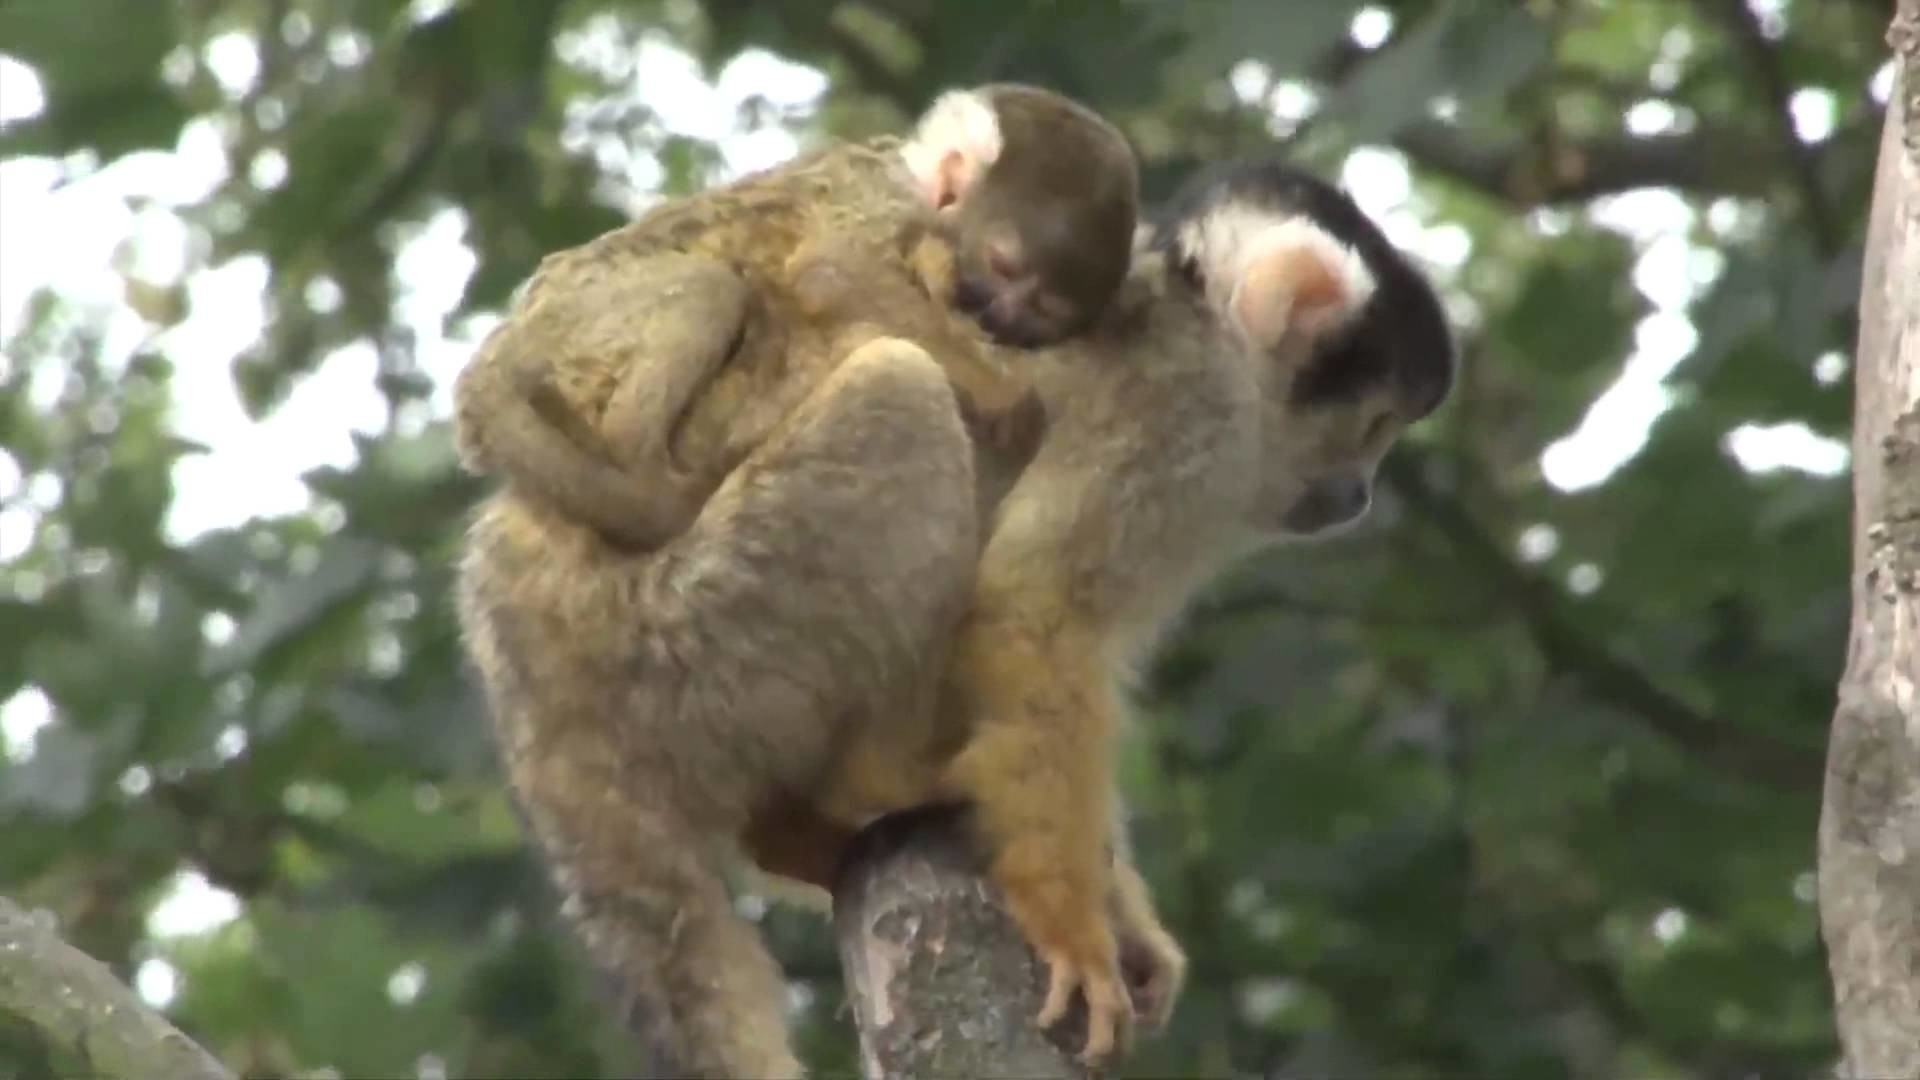 Adorable Baby Monkey Clings to Mom at London Zoo